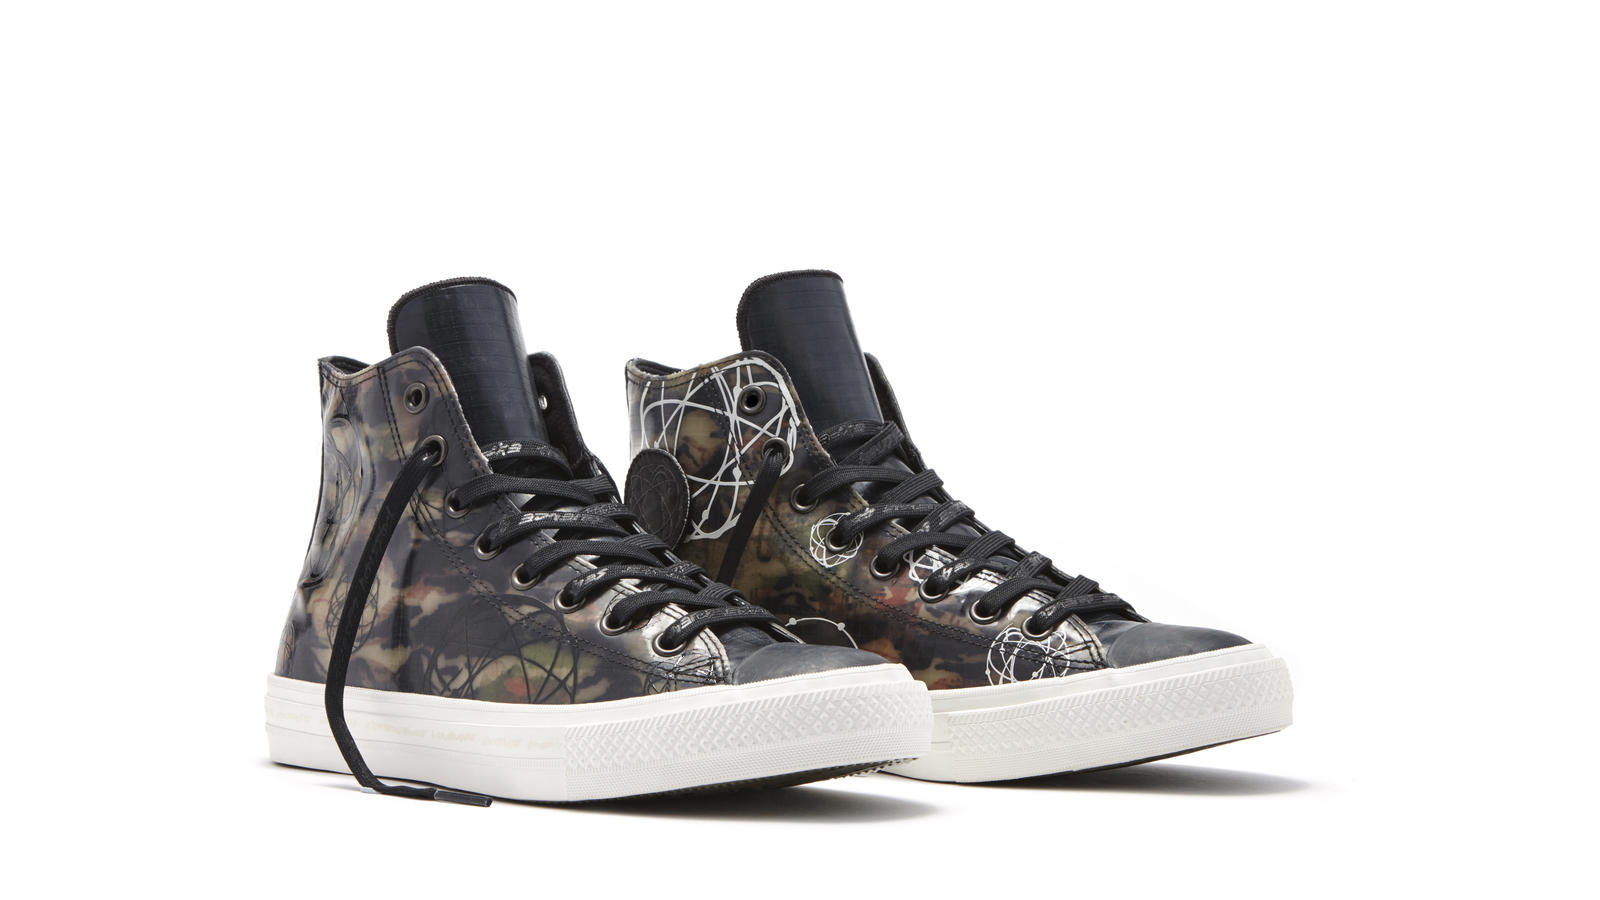 CONVERSE UNVEILS FIRST EVER CHUCK TAYLOR ALL STAR II